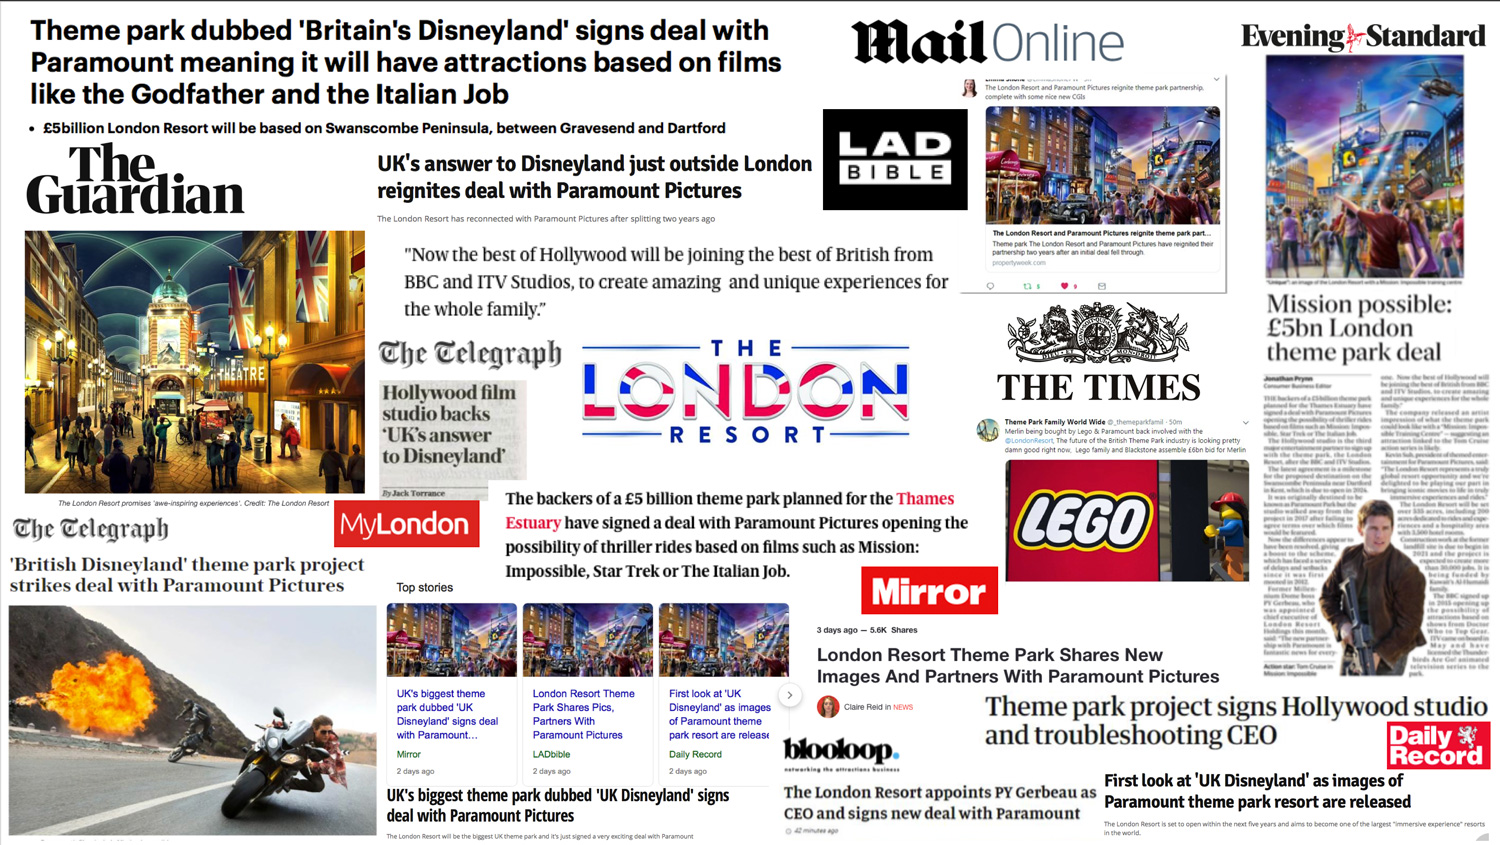 The London Resort: Strategu Consultancy and Communications